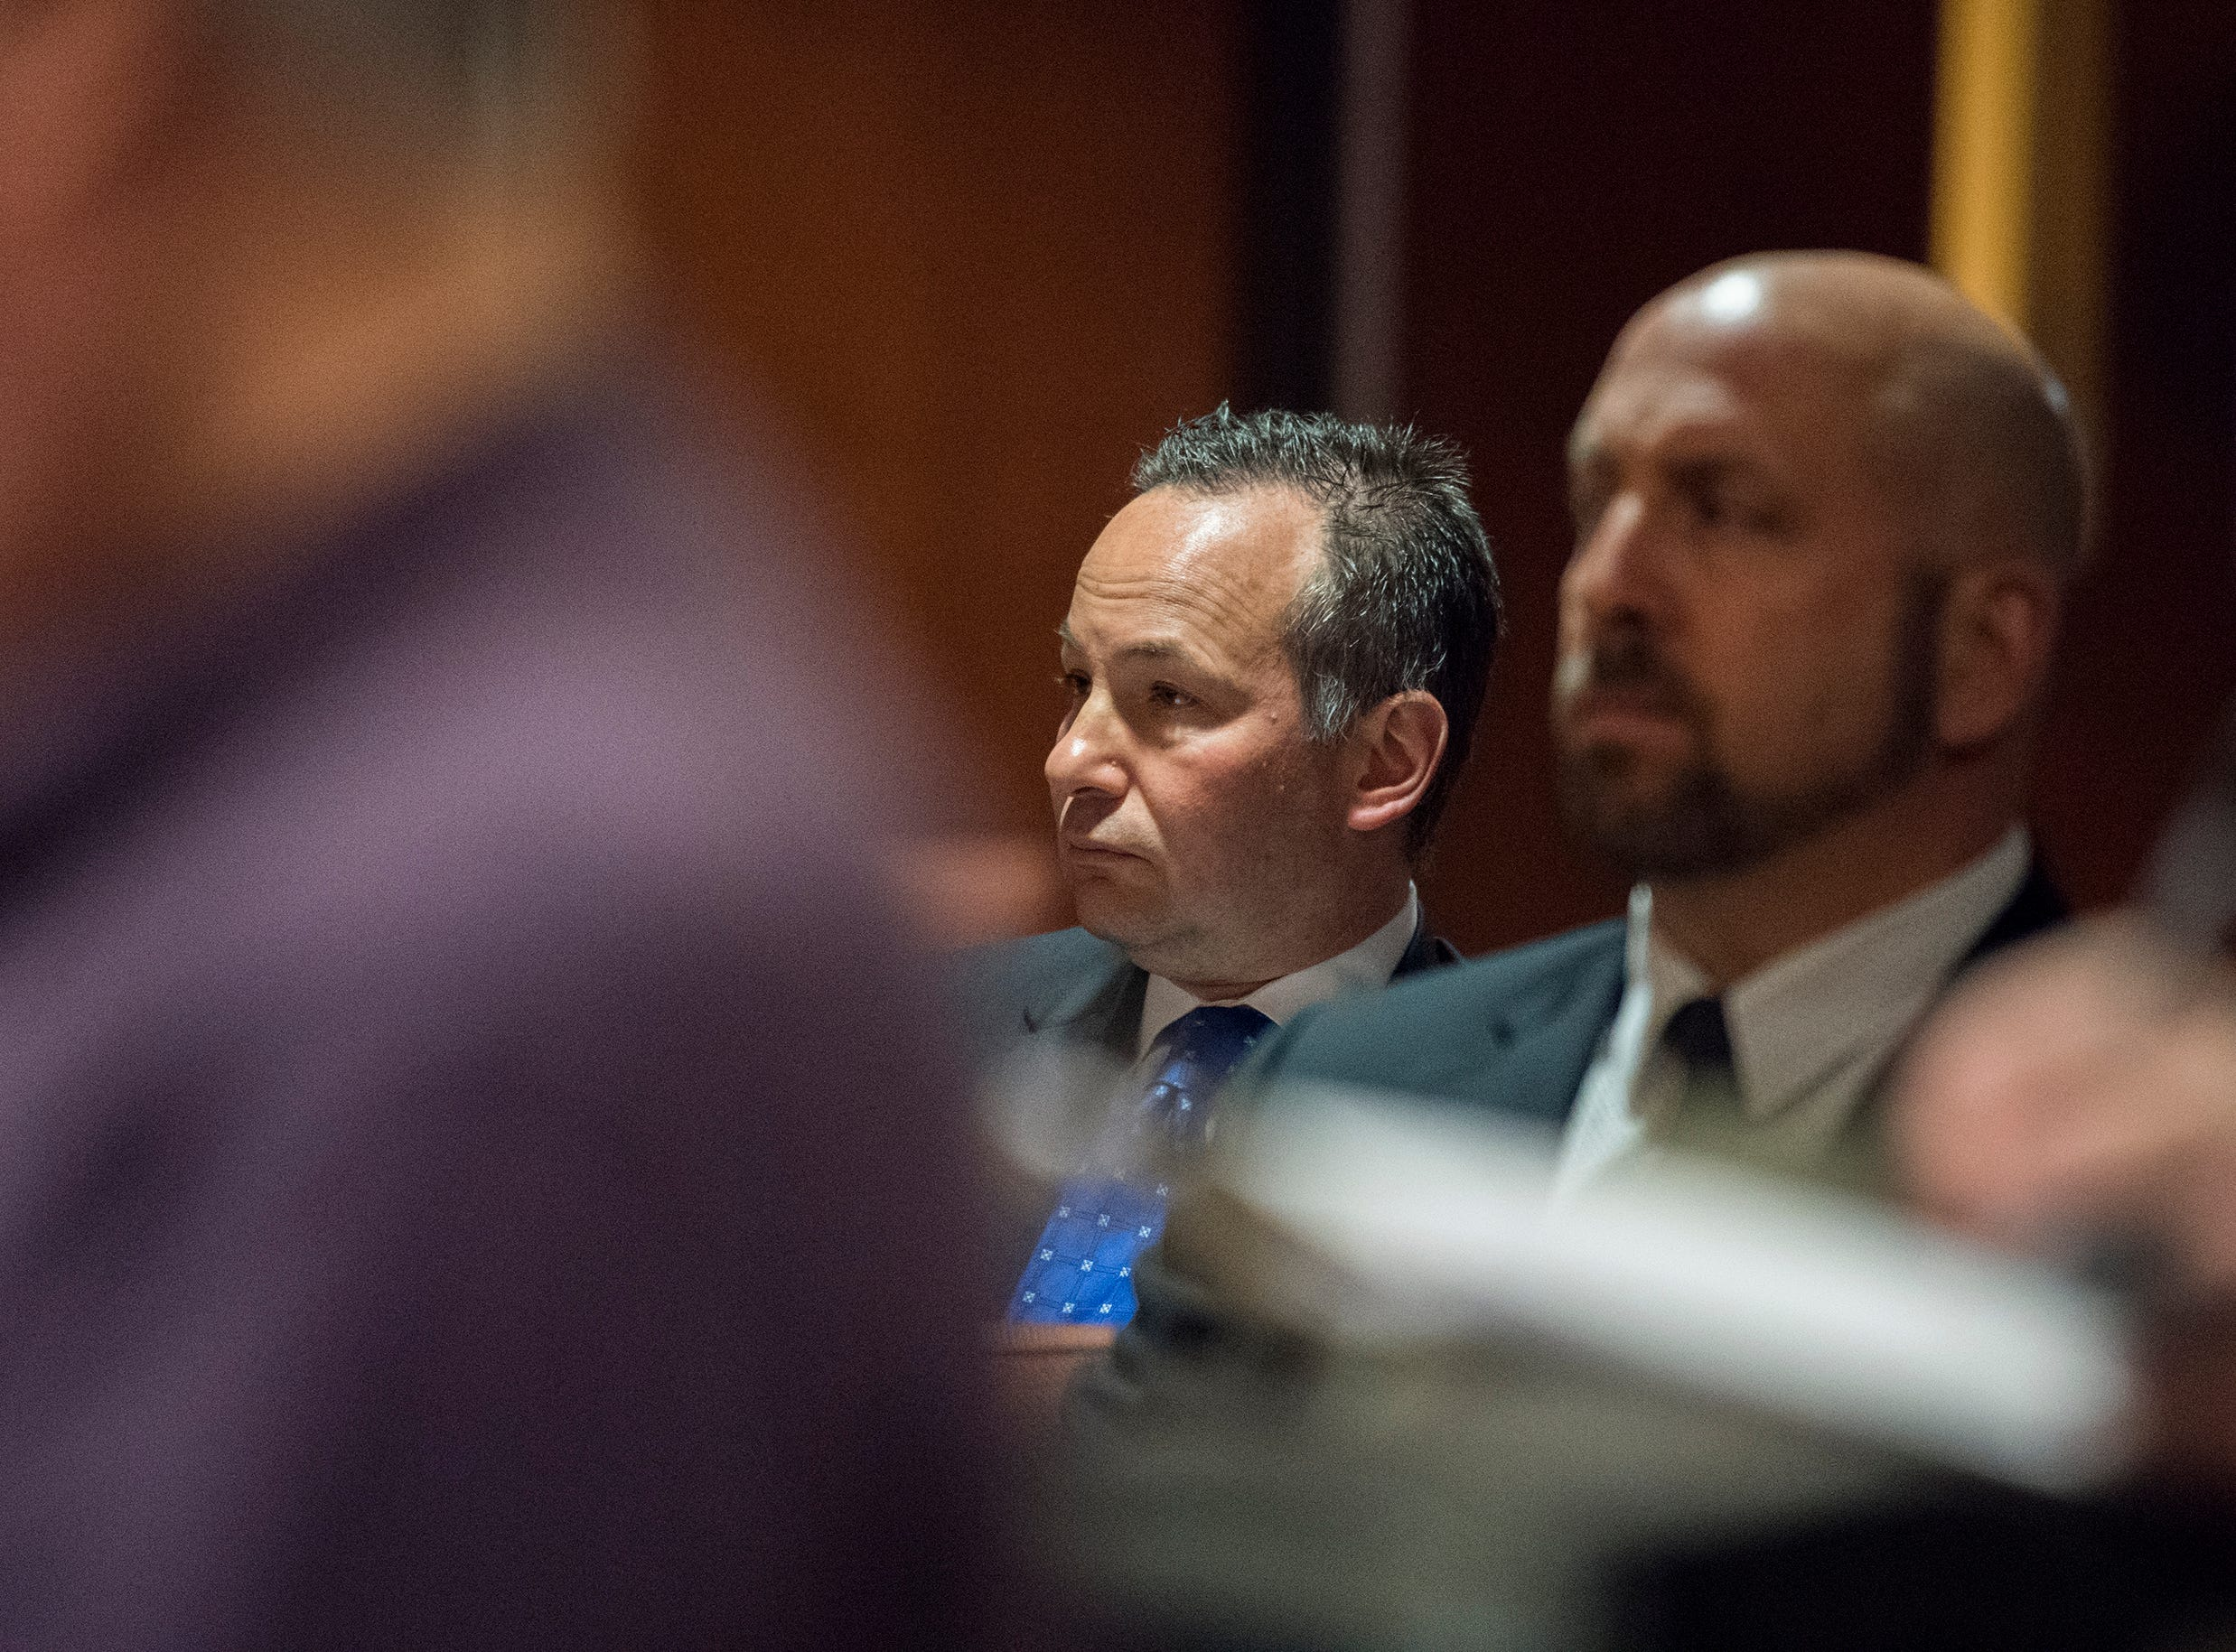 Burlington County Prosecutor Scott Coffina watches from the gallery as Kate McClure appears in court Monday, April 15, 2019 in Mount Holly, N.J. McClure pleaded guilty to a state charge in a 'good Samaritan' scam of GoFundMe donors and faces four years in jail.